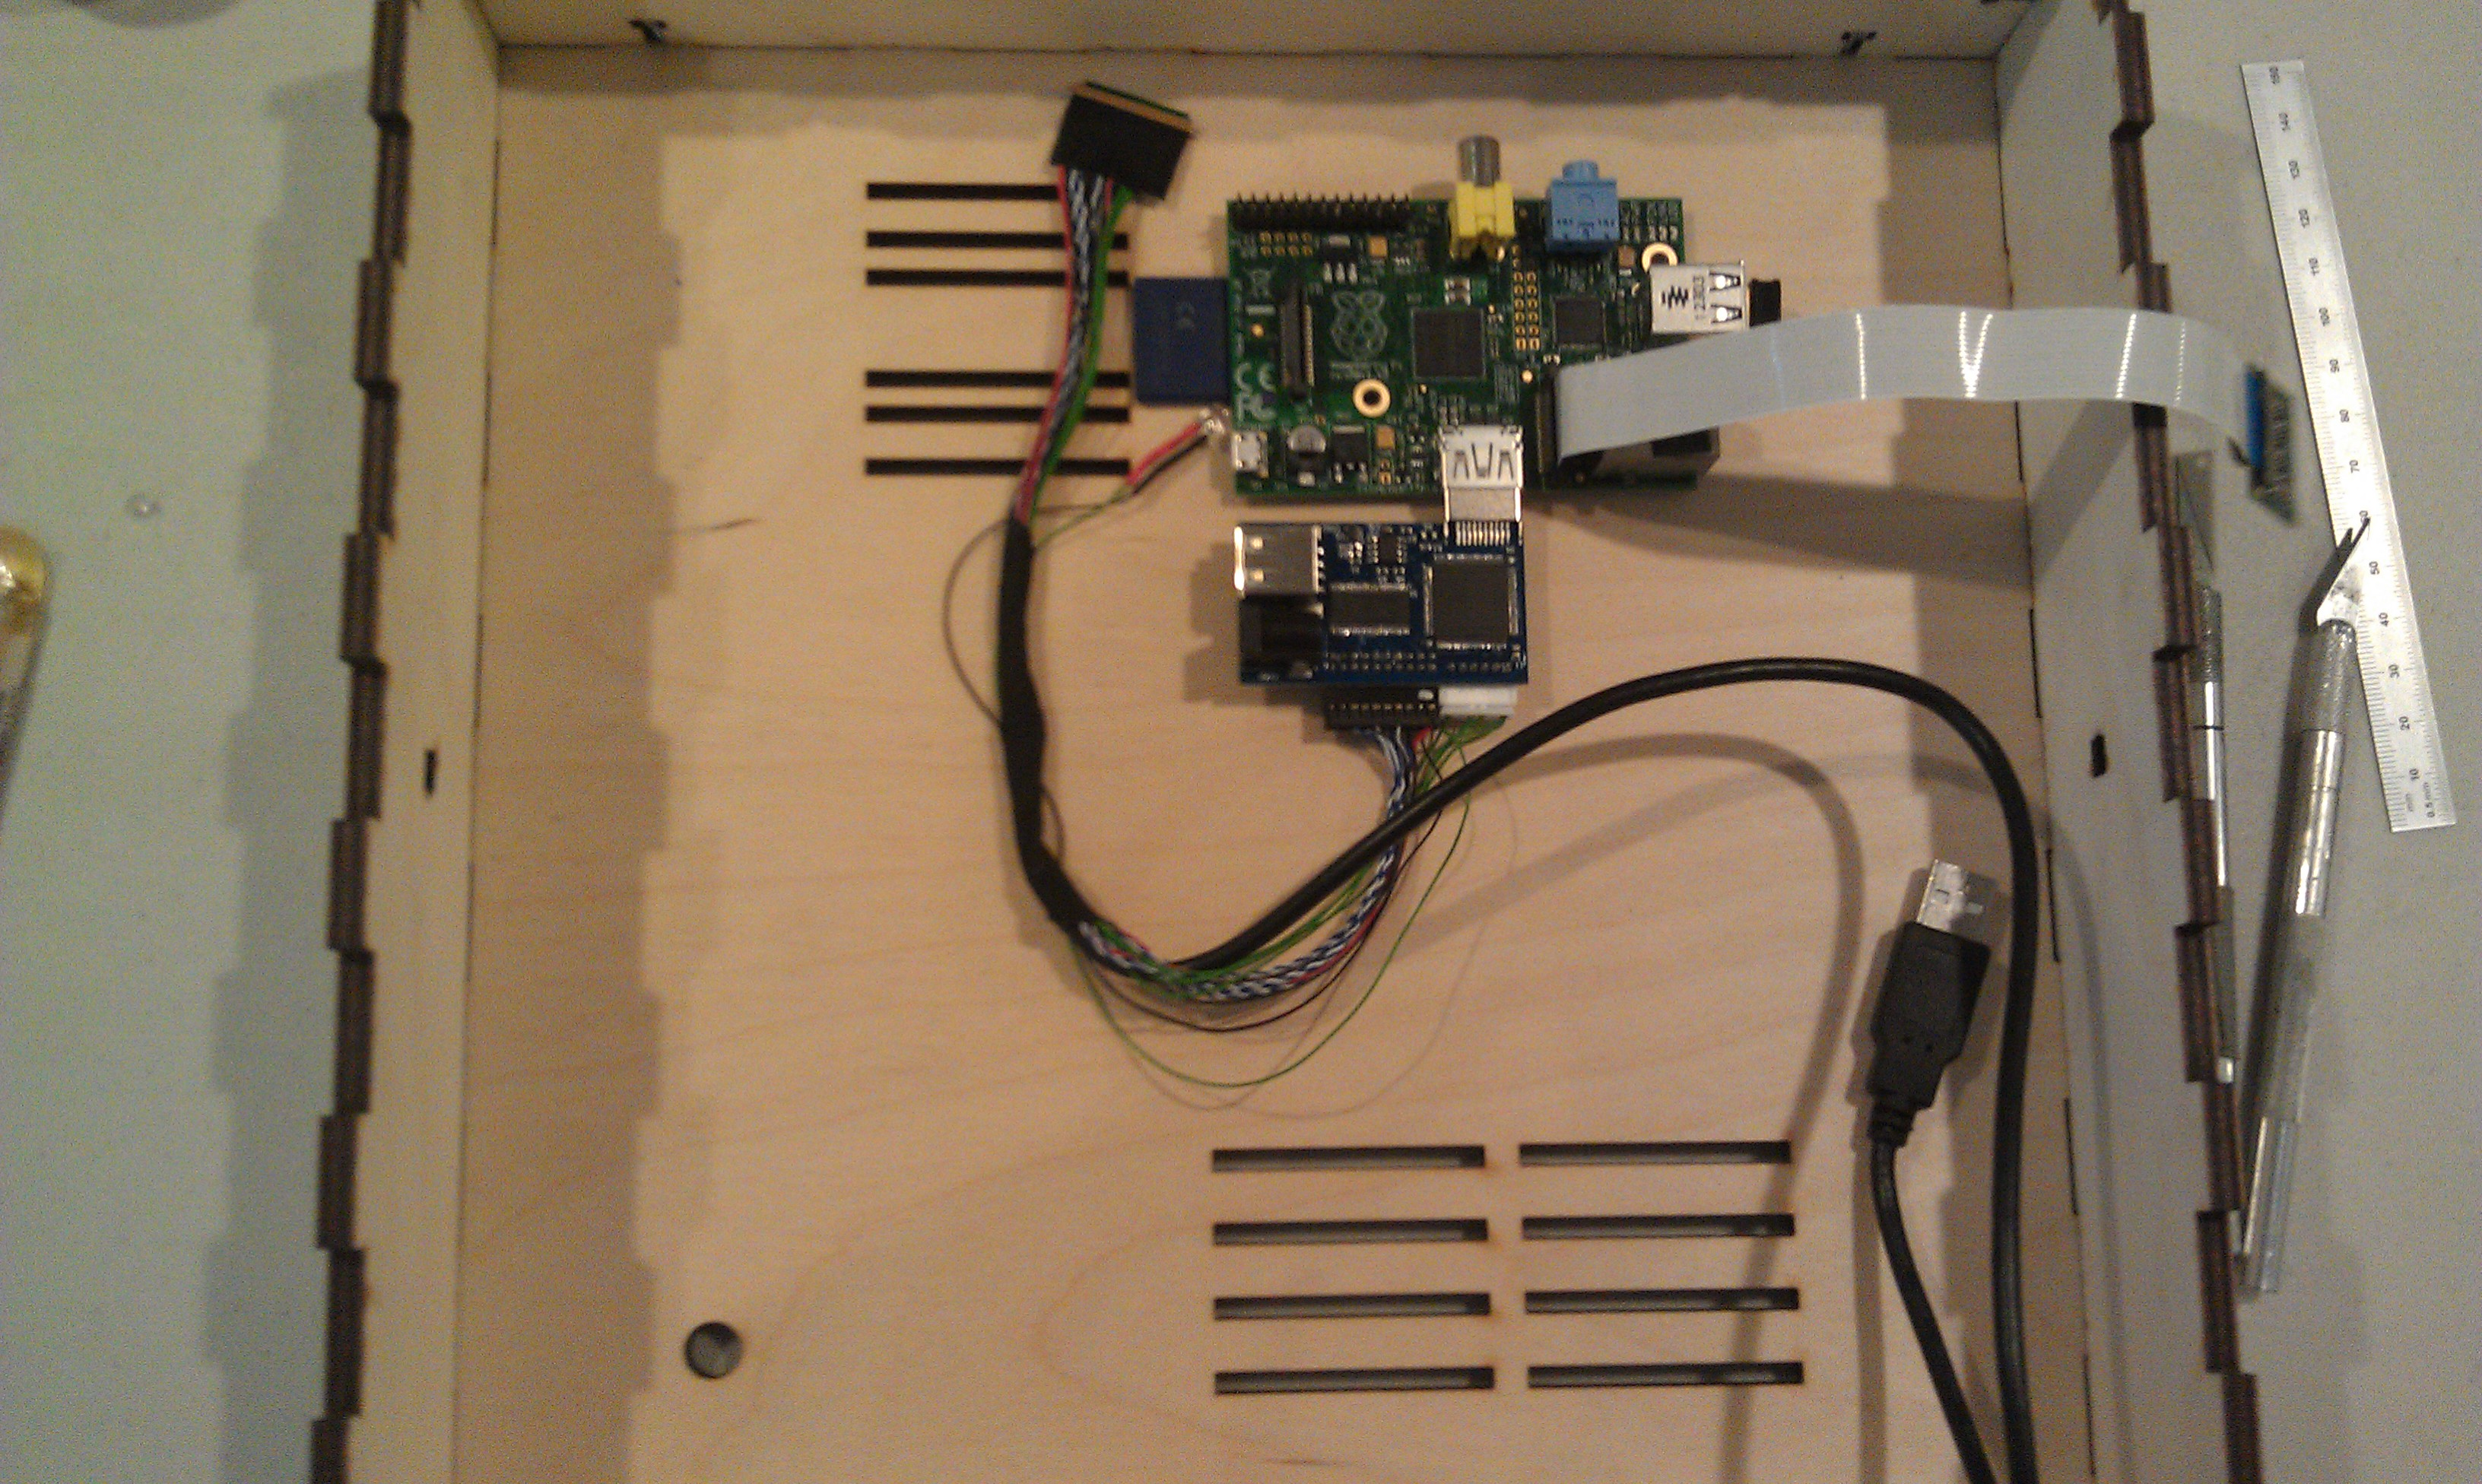 Raspberry Pi Bald Wisdom Cnc Projects Buy Alamode Controller Calculator And Hdmi Adapter